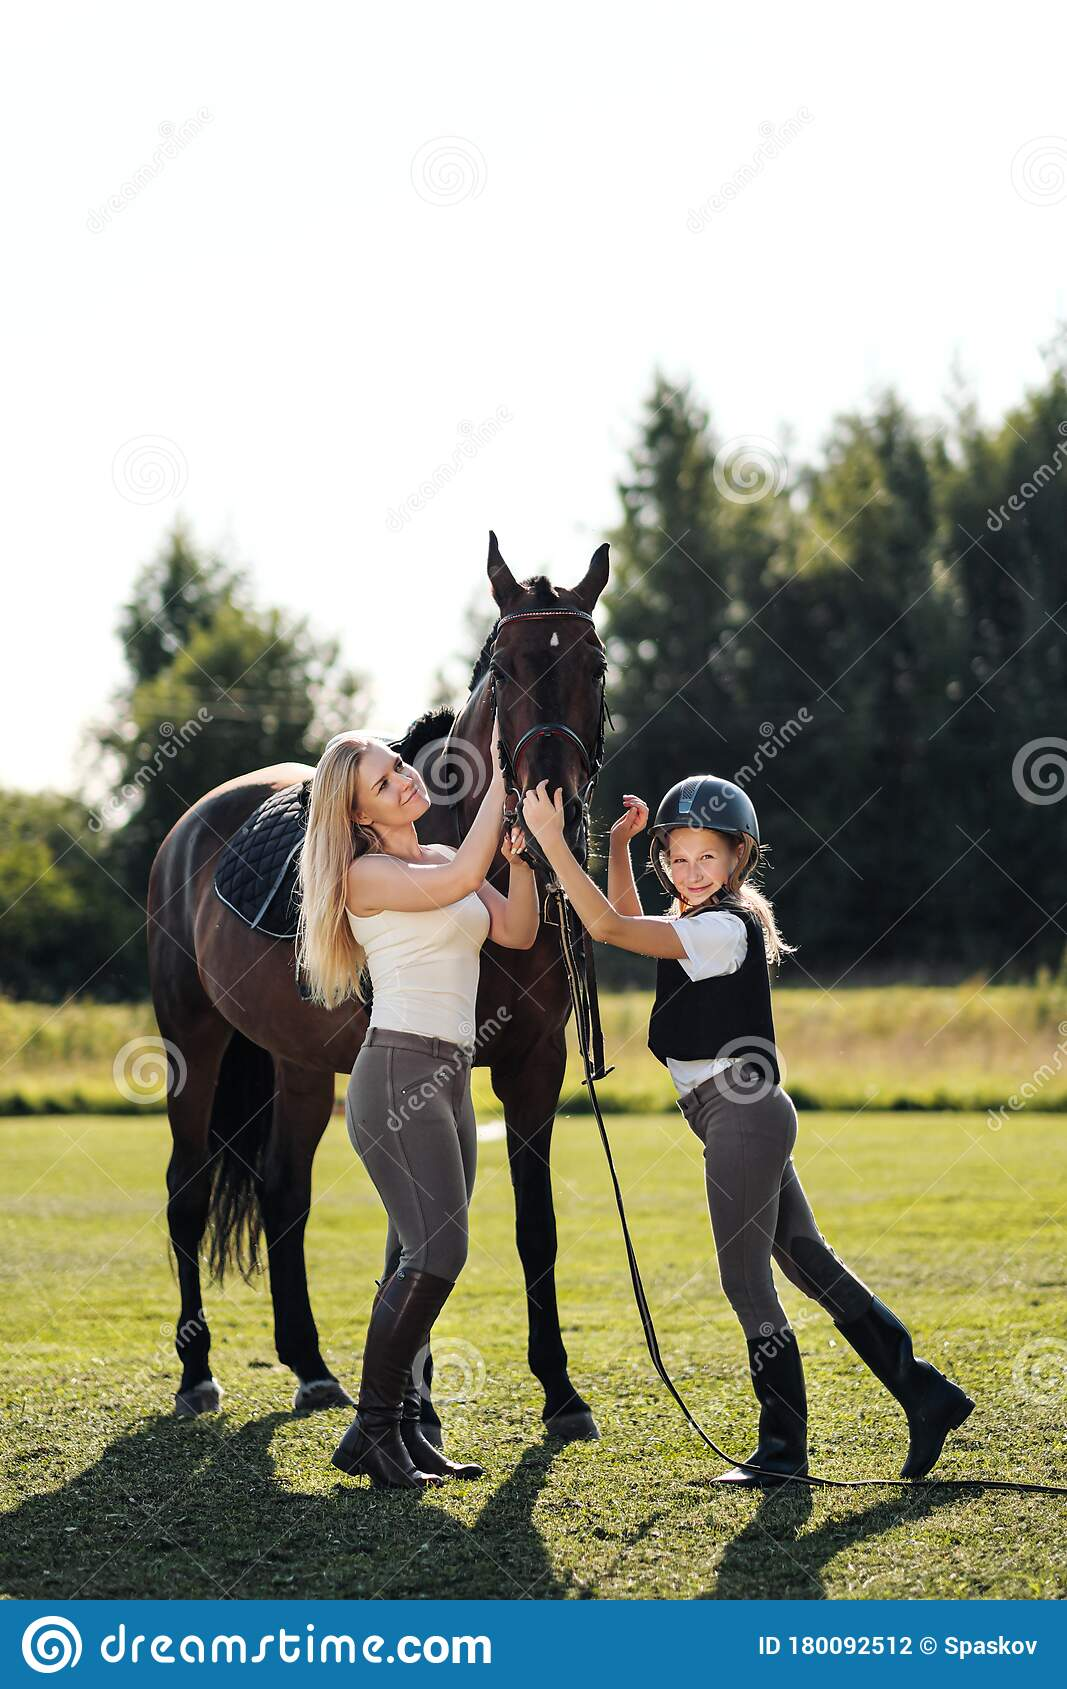 192 Mother Daughter Horse Ride Photos Free Royalty Free Stock Photos From Dreamstime